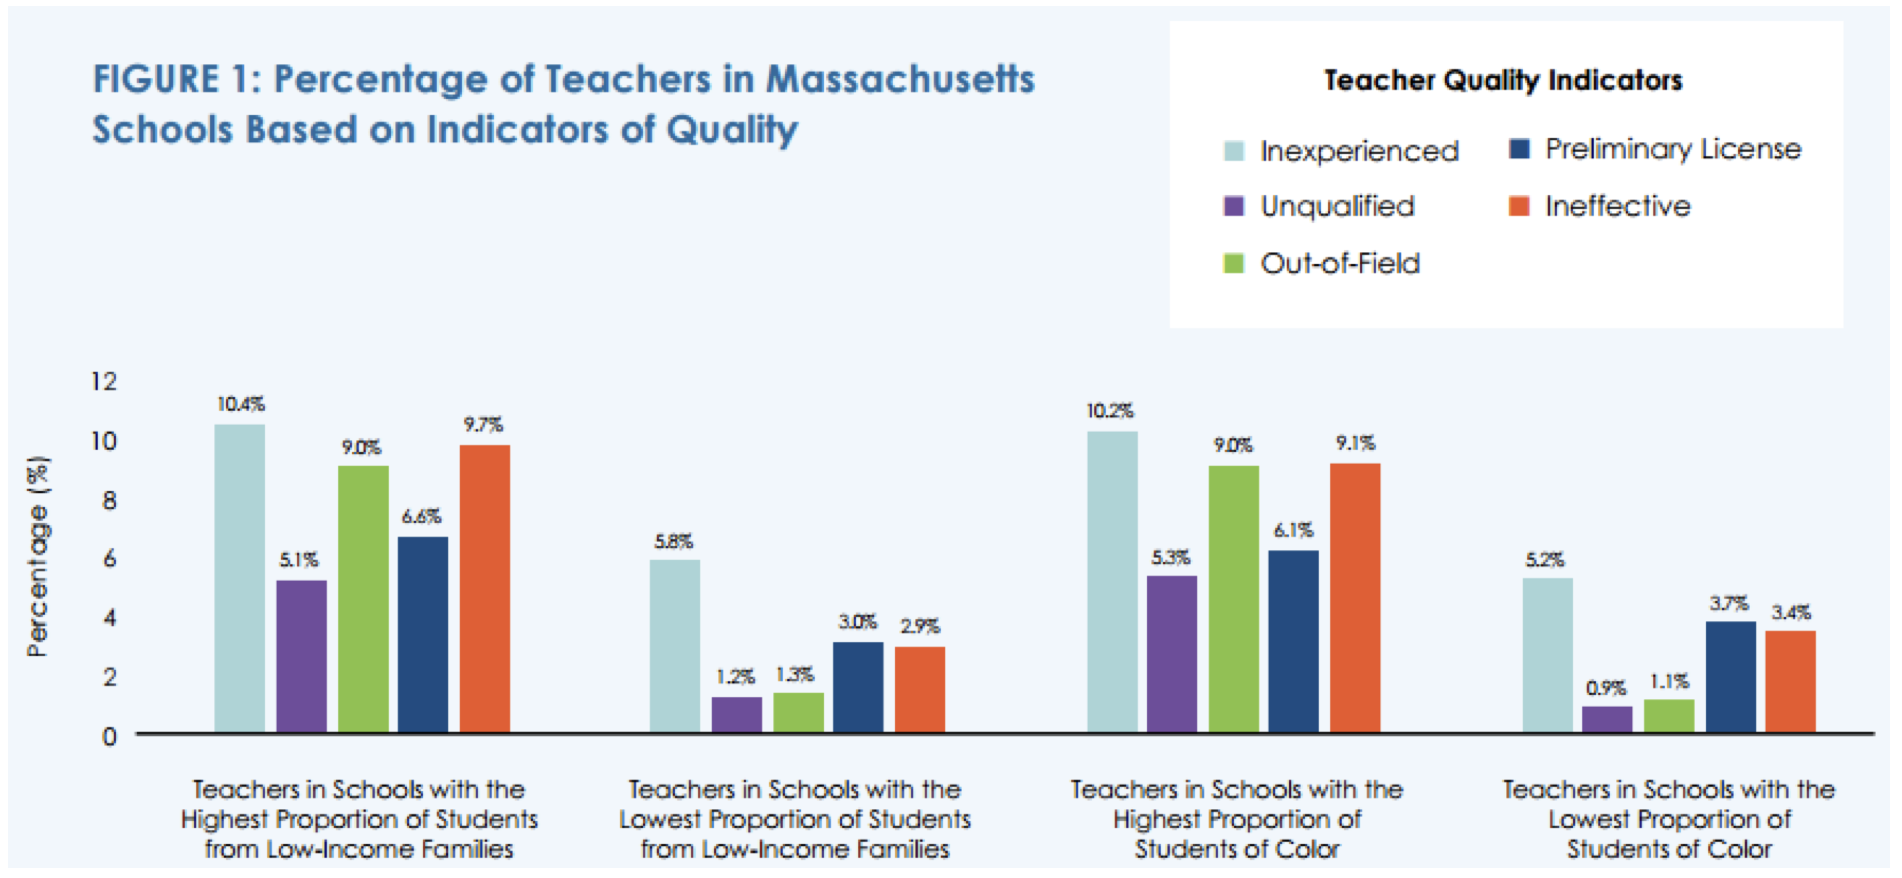 Percentage of Teaxhers in MAssachusetts Schools Based on Indicators of Quality